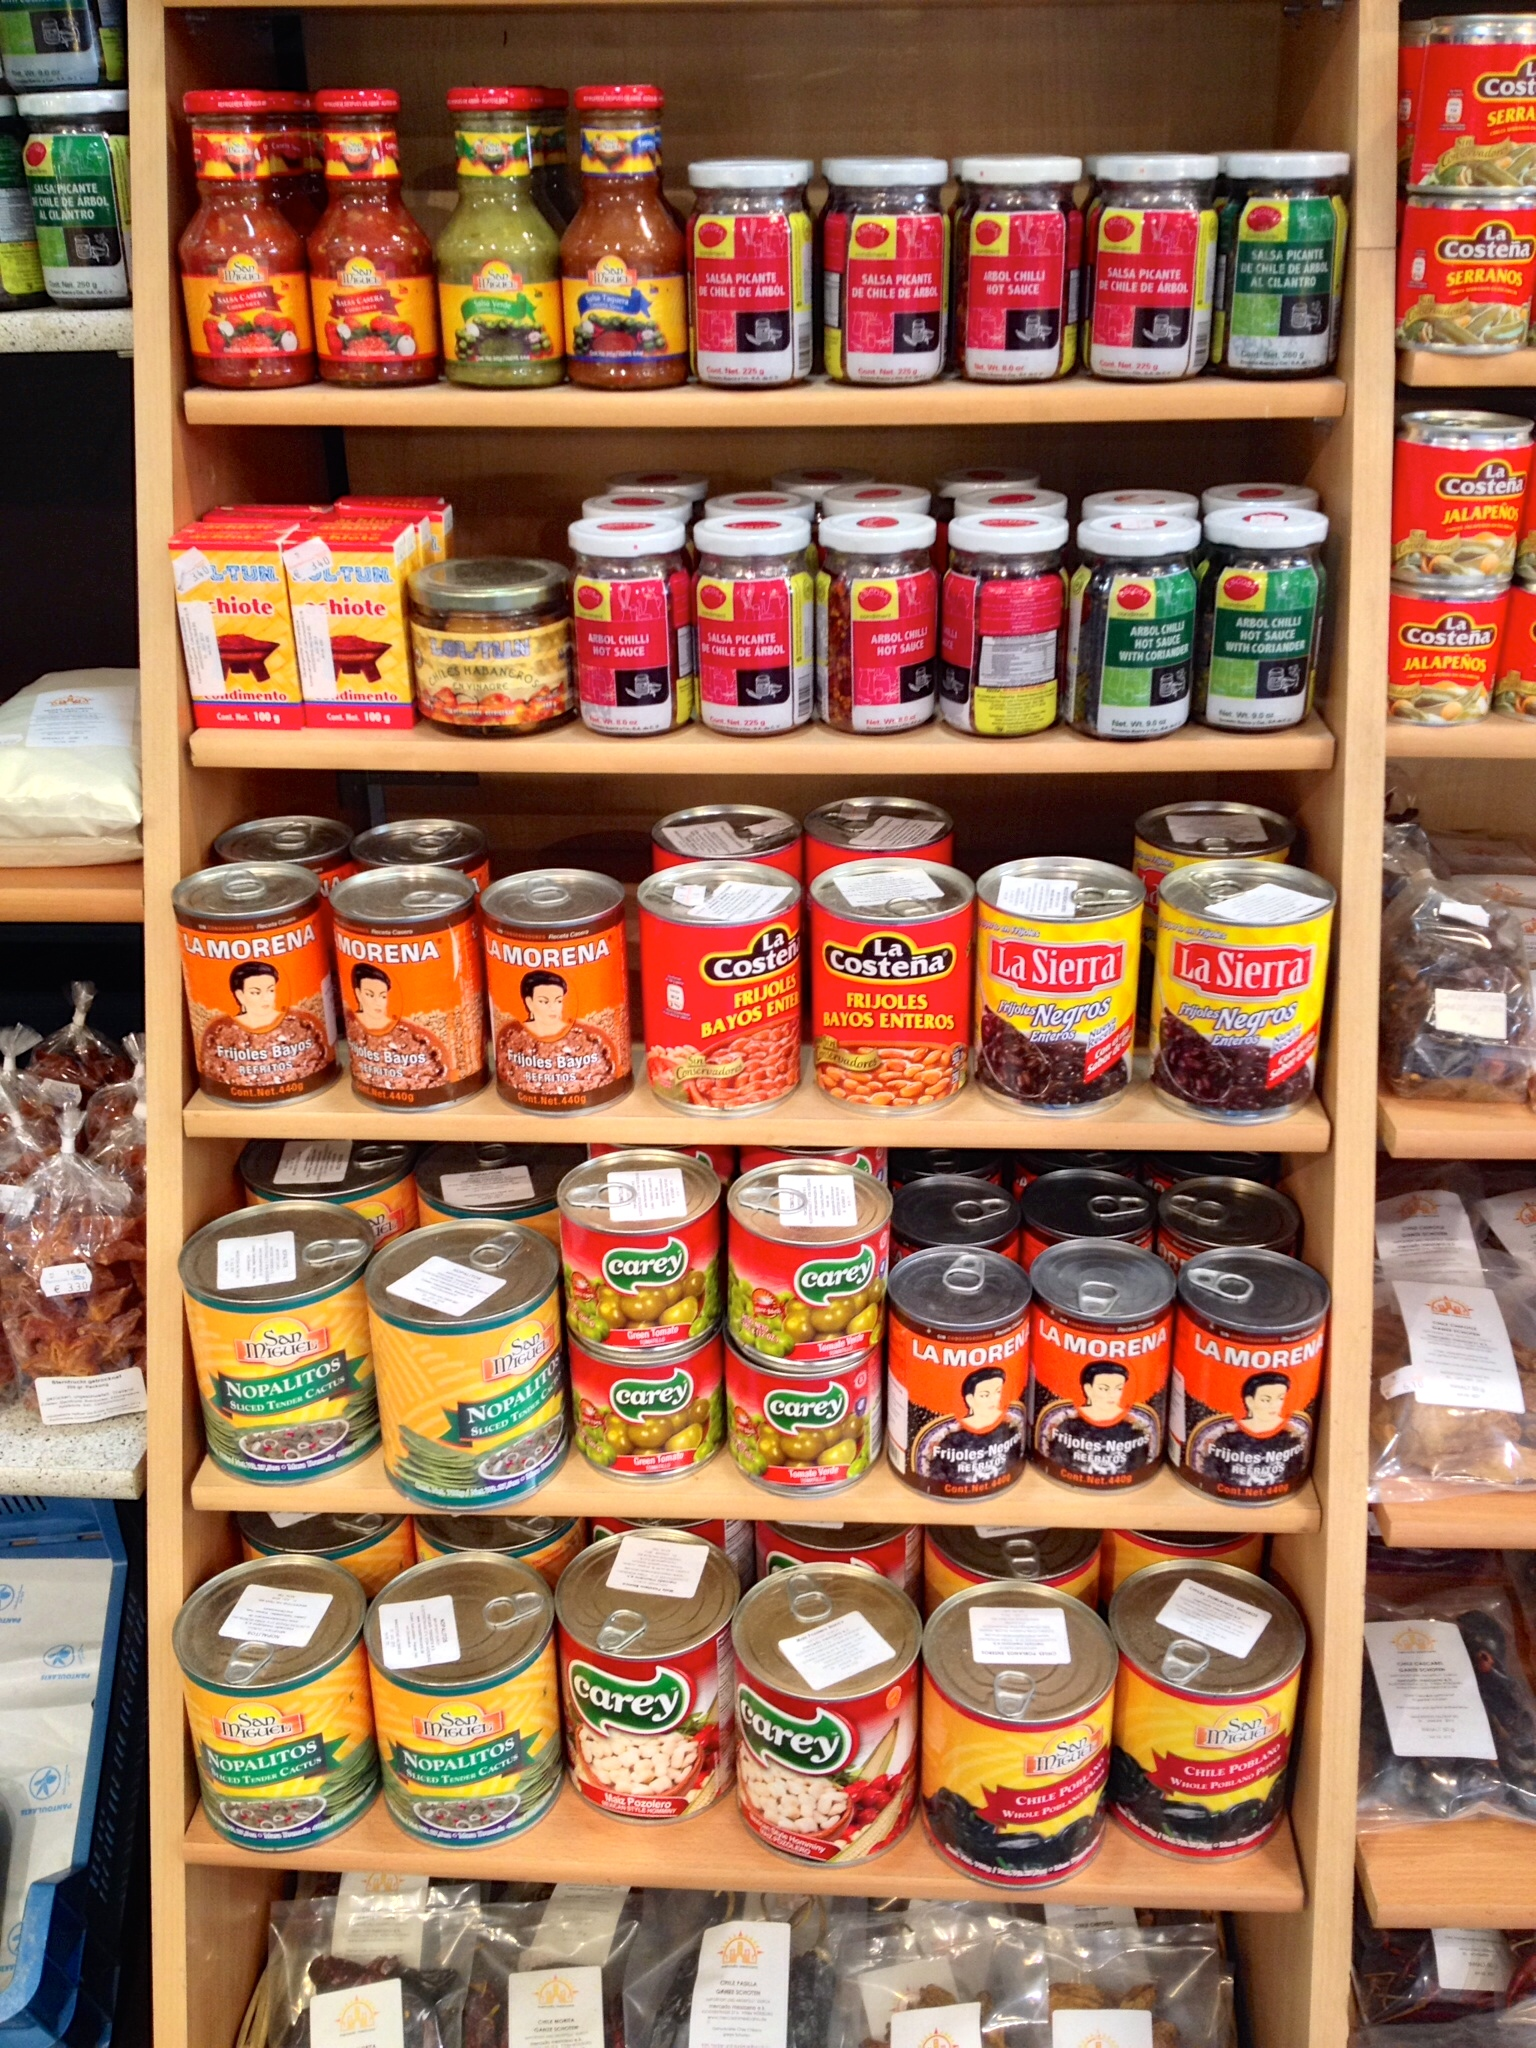 Canned peppers, beans, and sauces at El Mercado Español